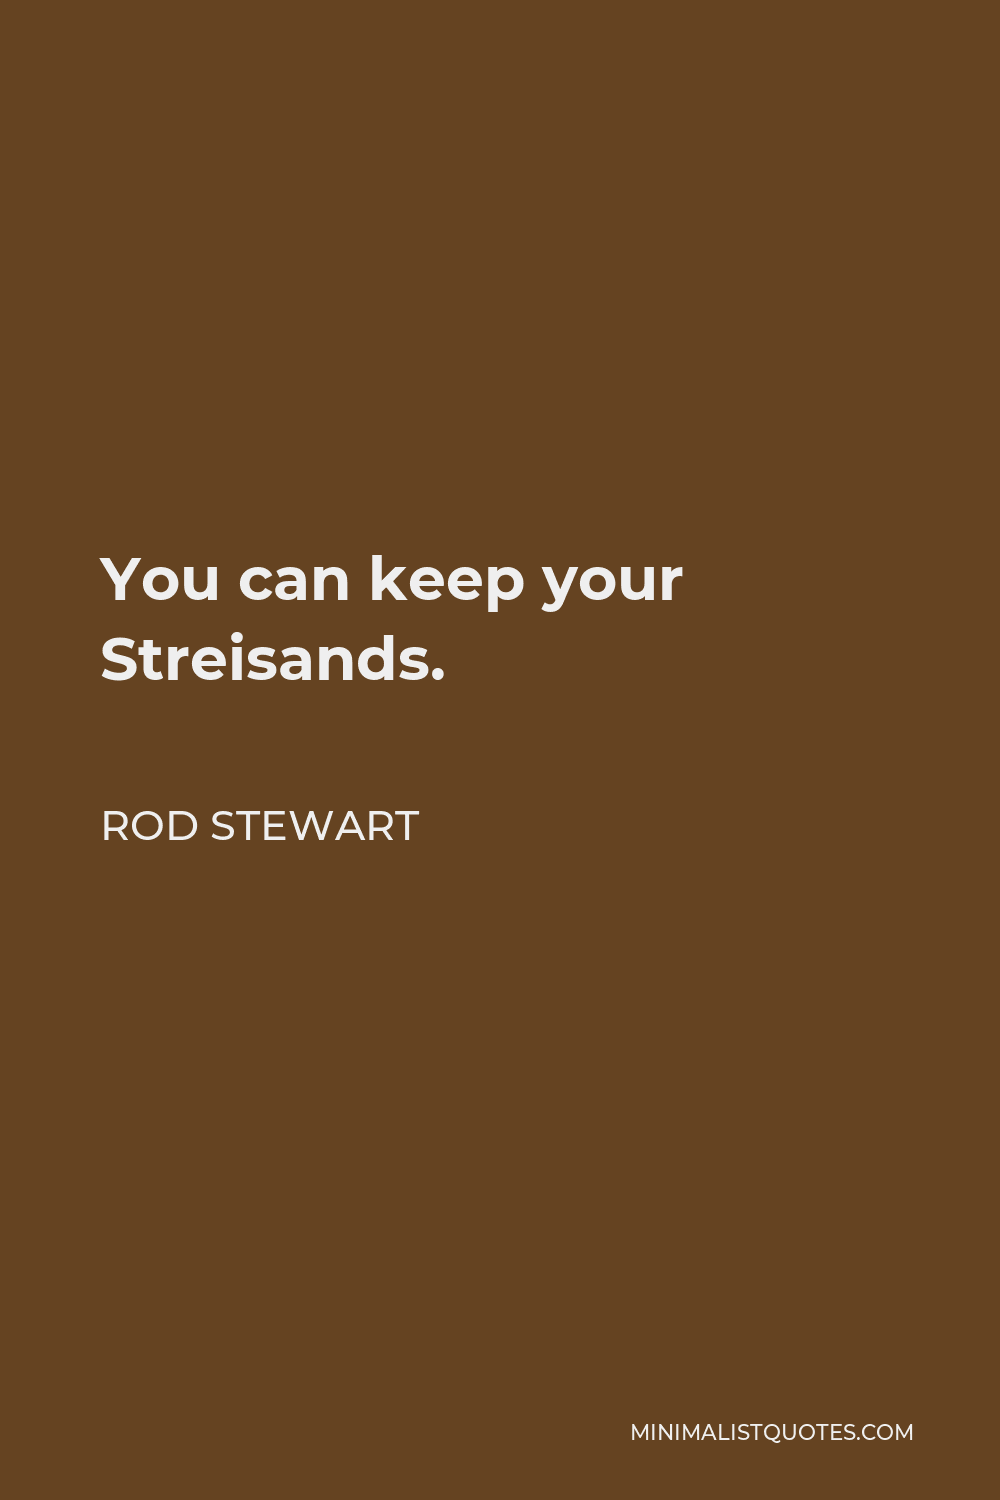 Rod Stewart Quote - You can keep your Streisands.